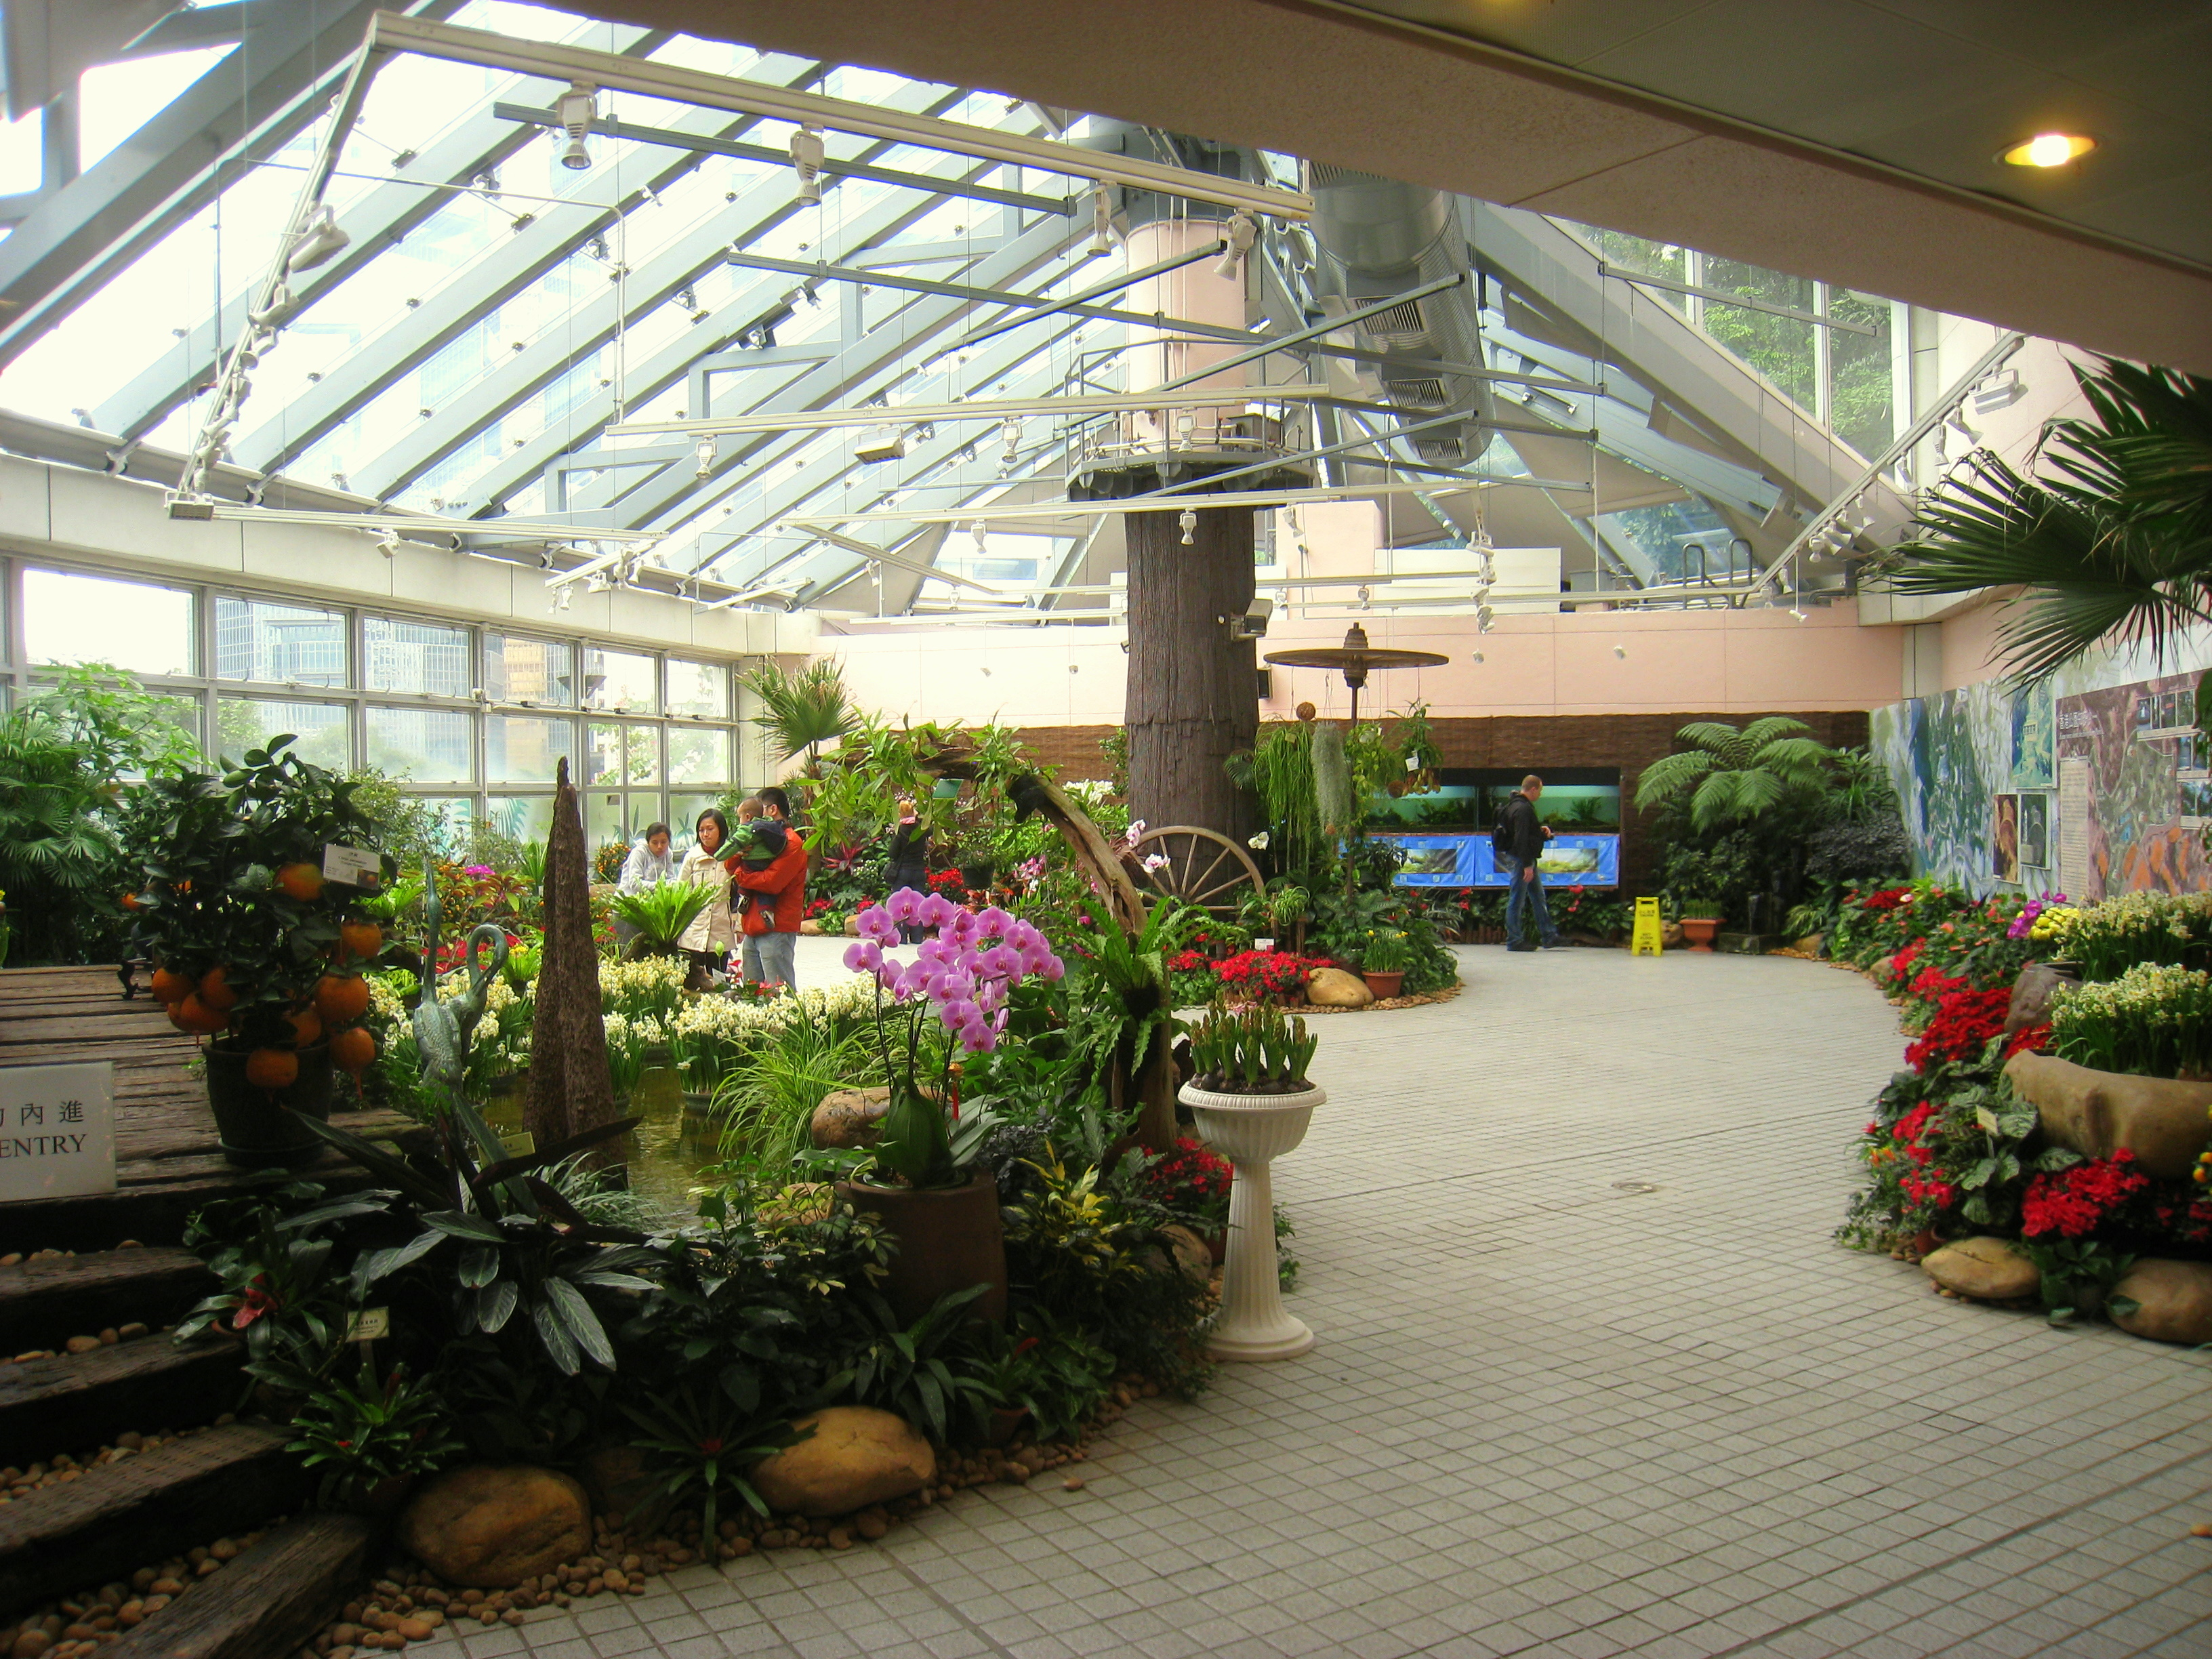 File Display Plant House Hong Kong Park Conservatory Img 9805 Jpg Wikimedia Commons